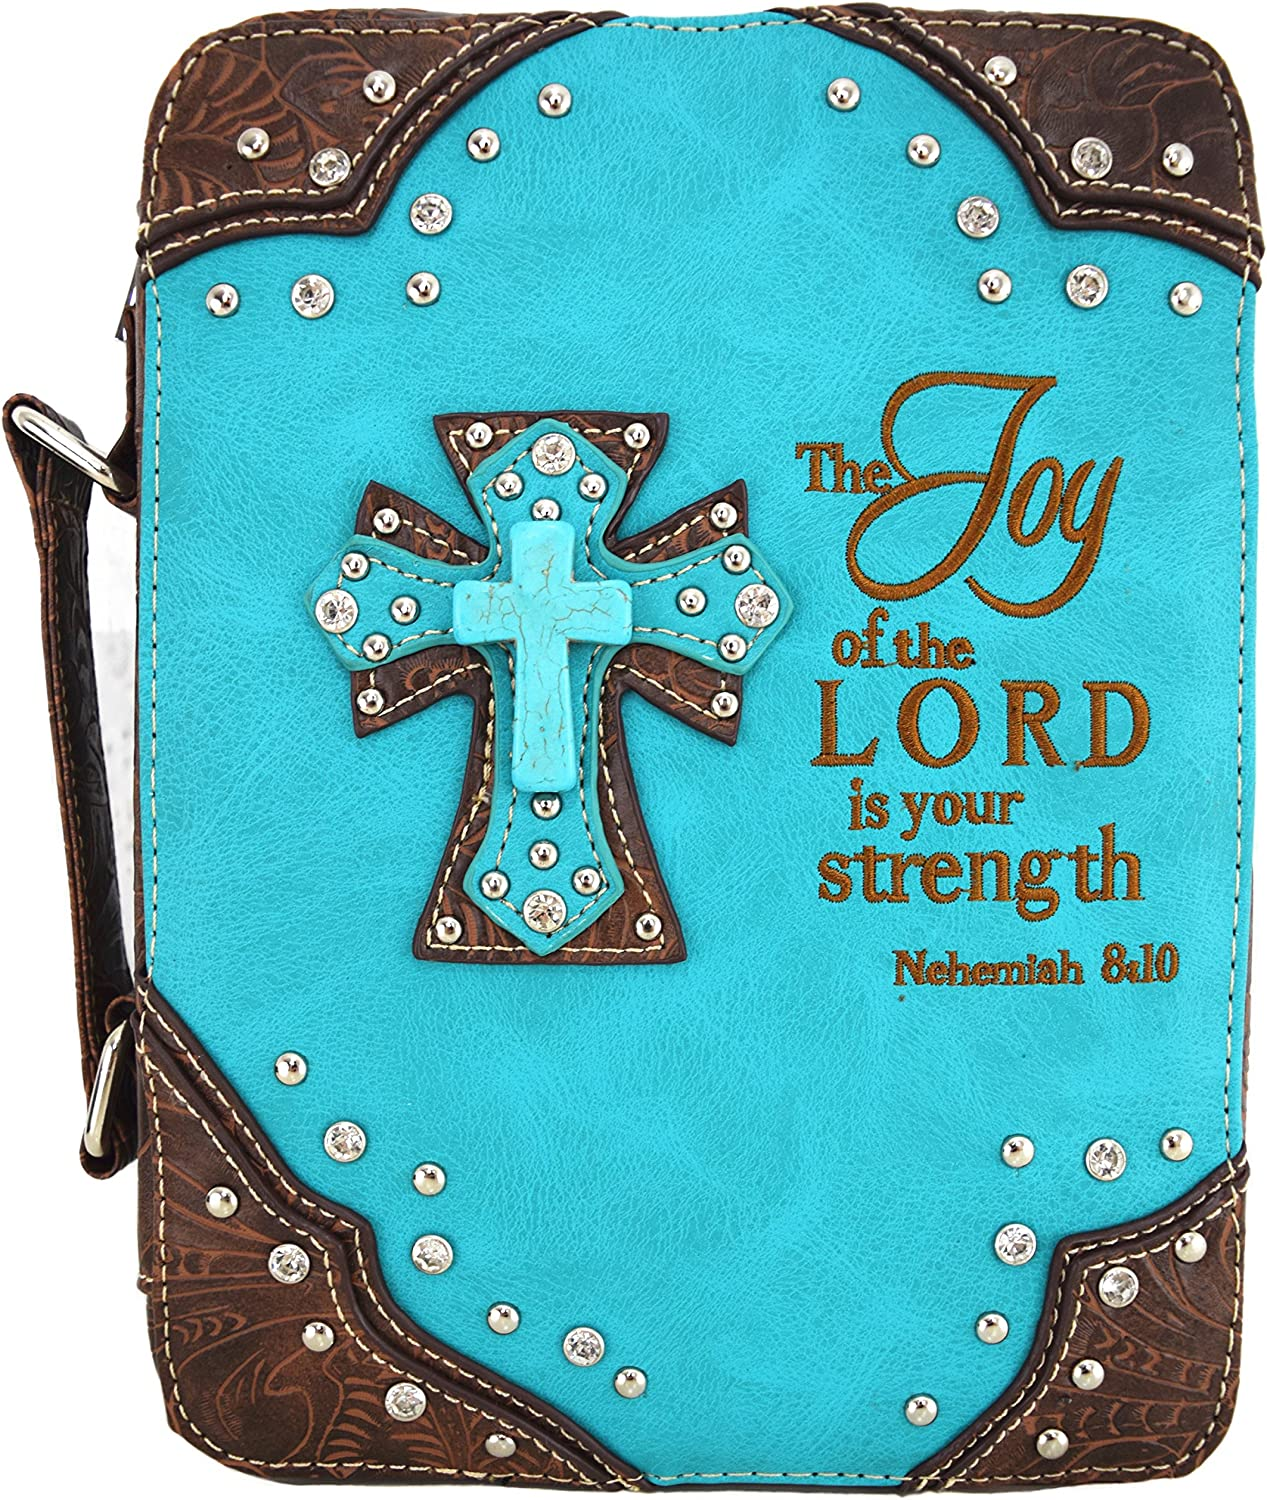 WF Western Style Embroidered Scripture Bible Verse Cover Cross Extra Strap Messenger Bag Crossbody